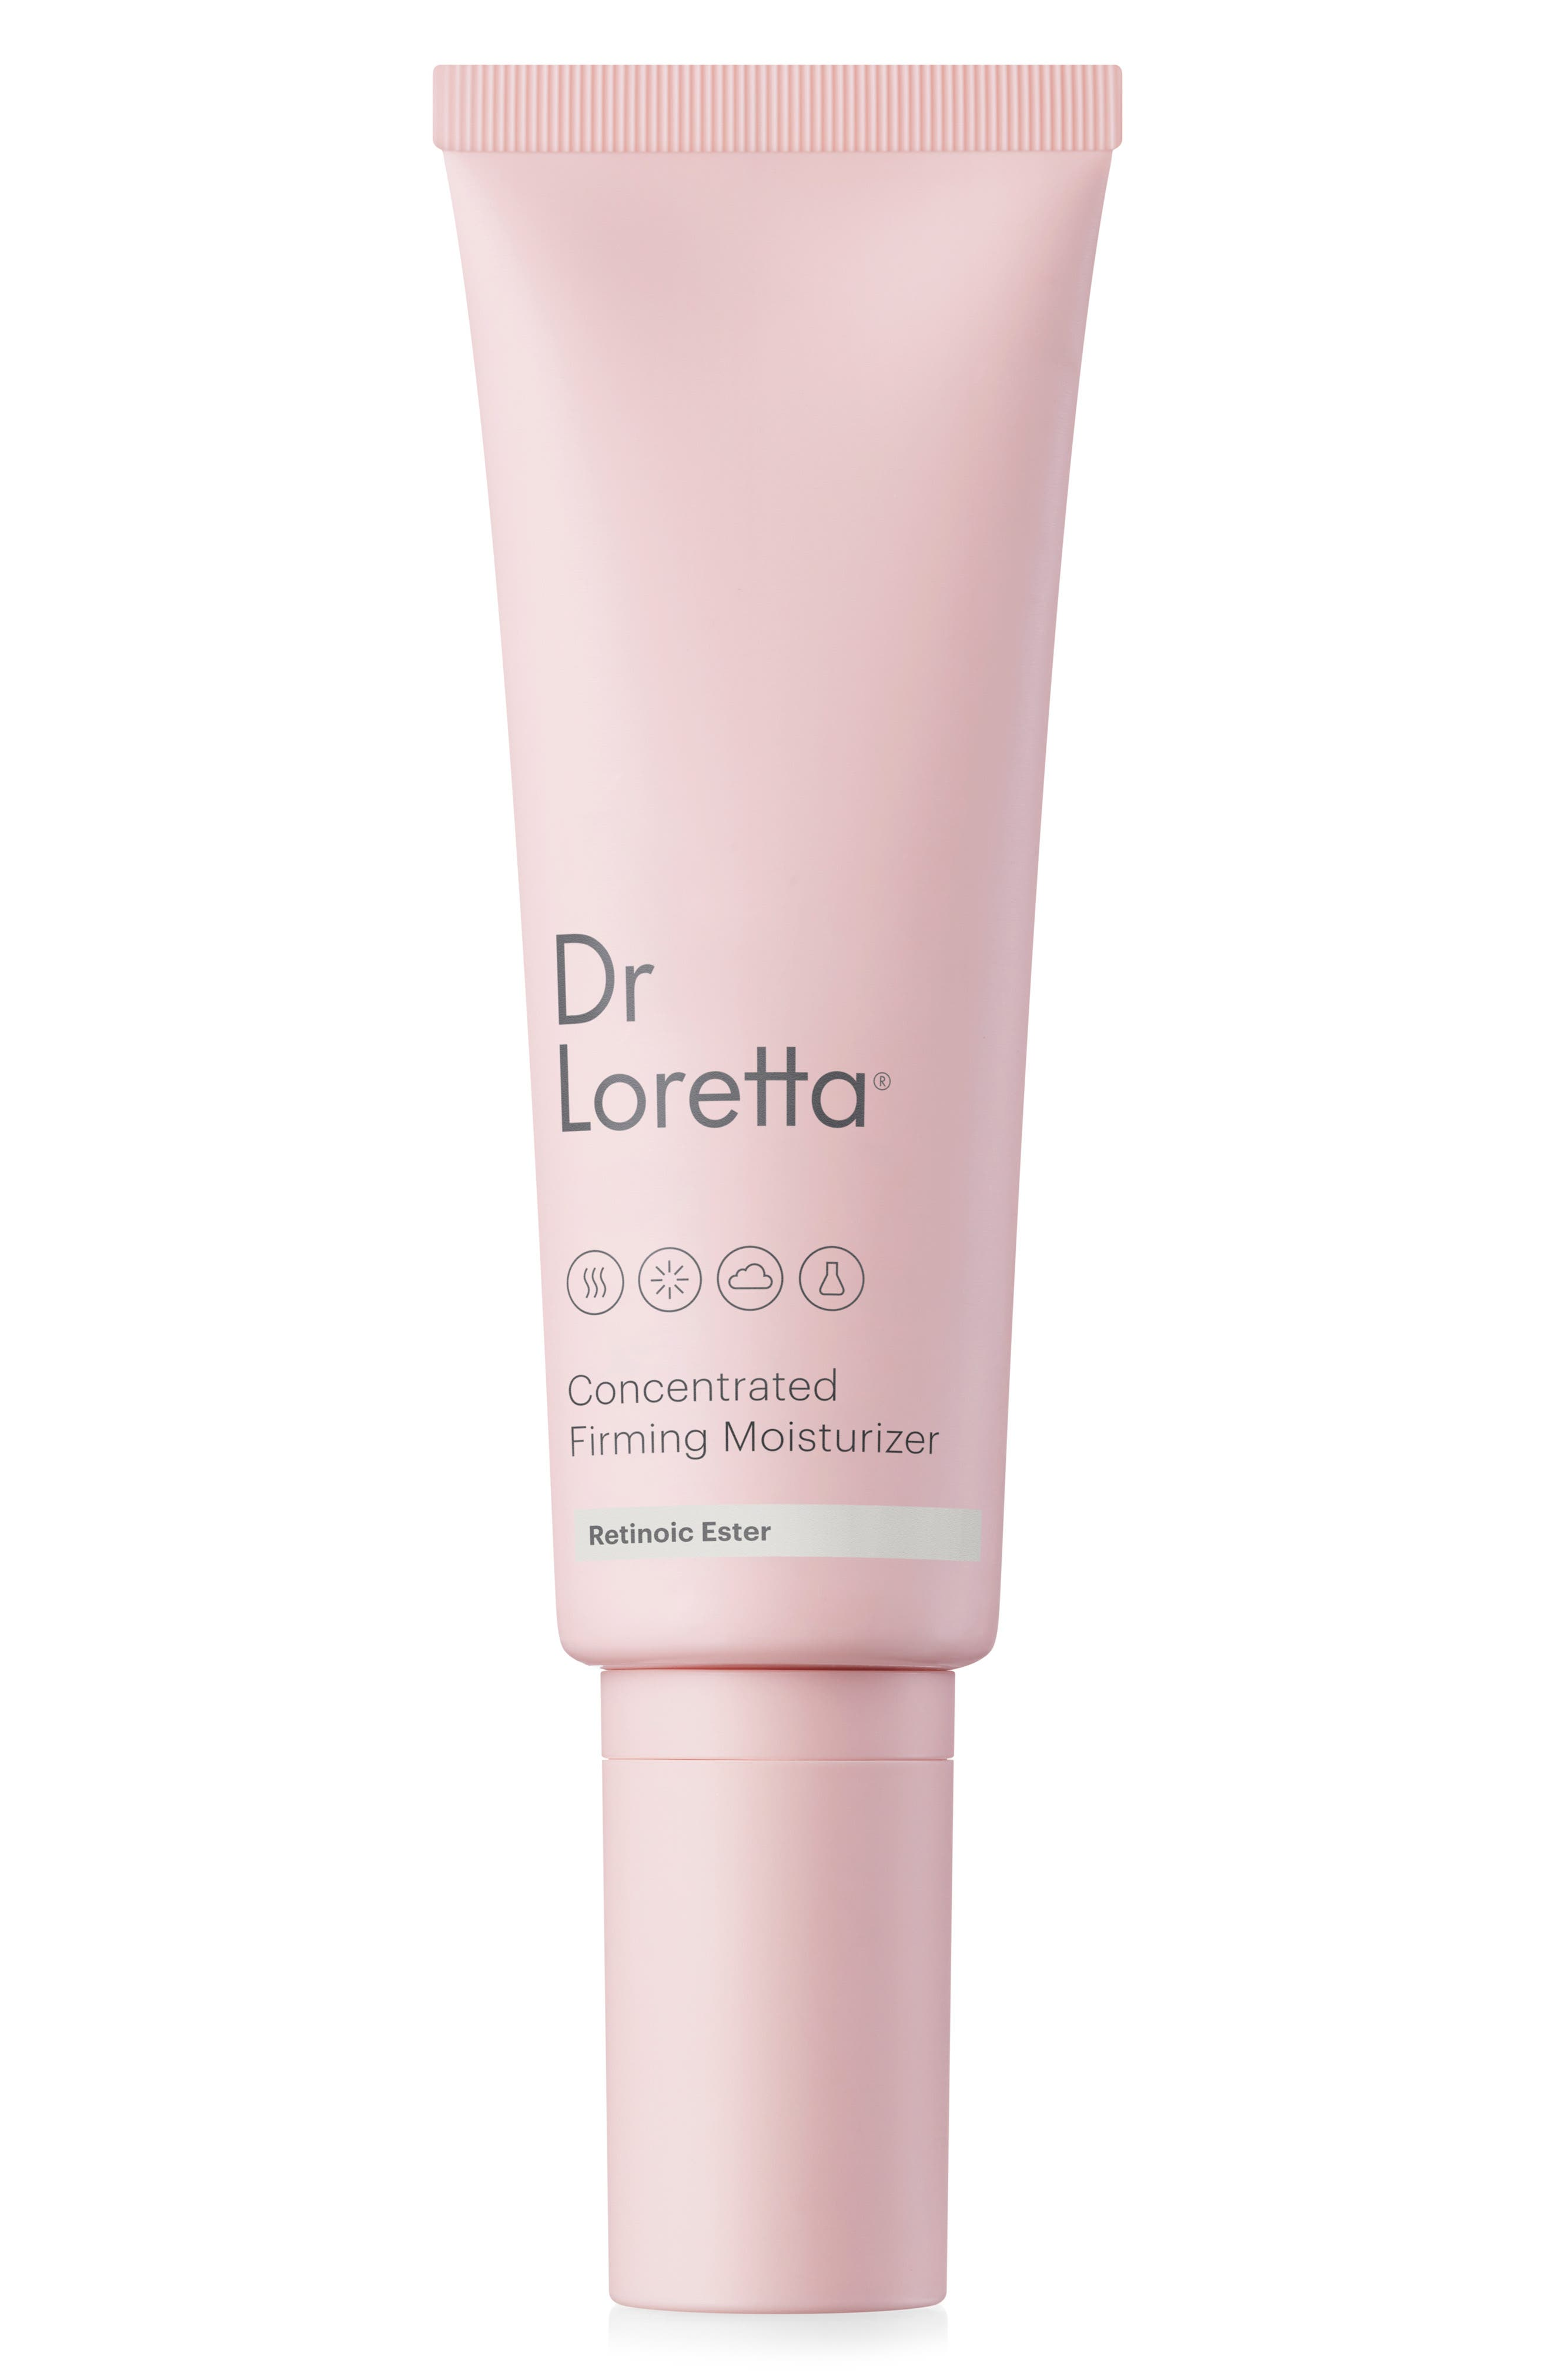 Concentrated Firming Moisturizer at Nordstrom